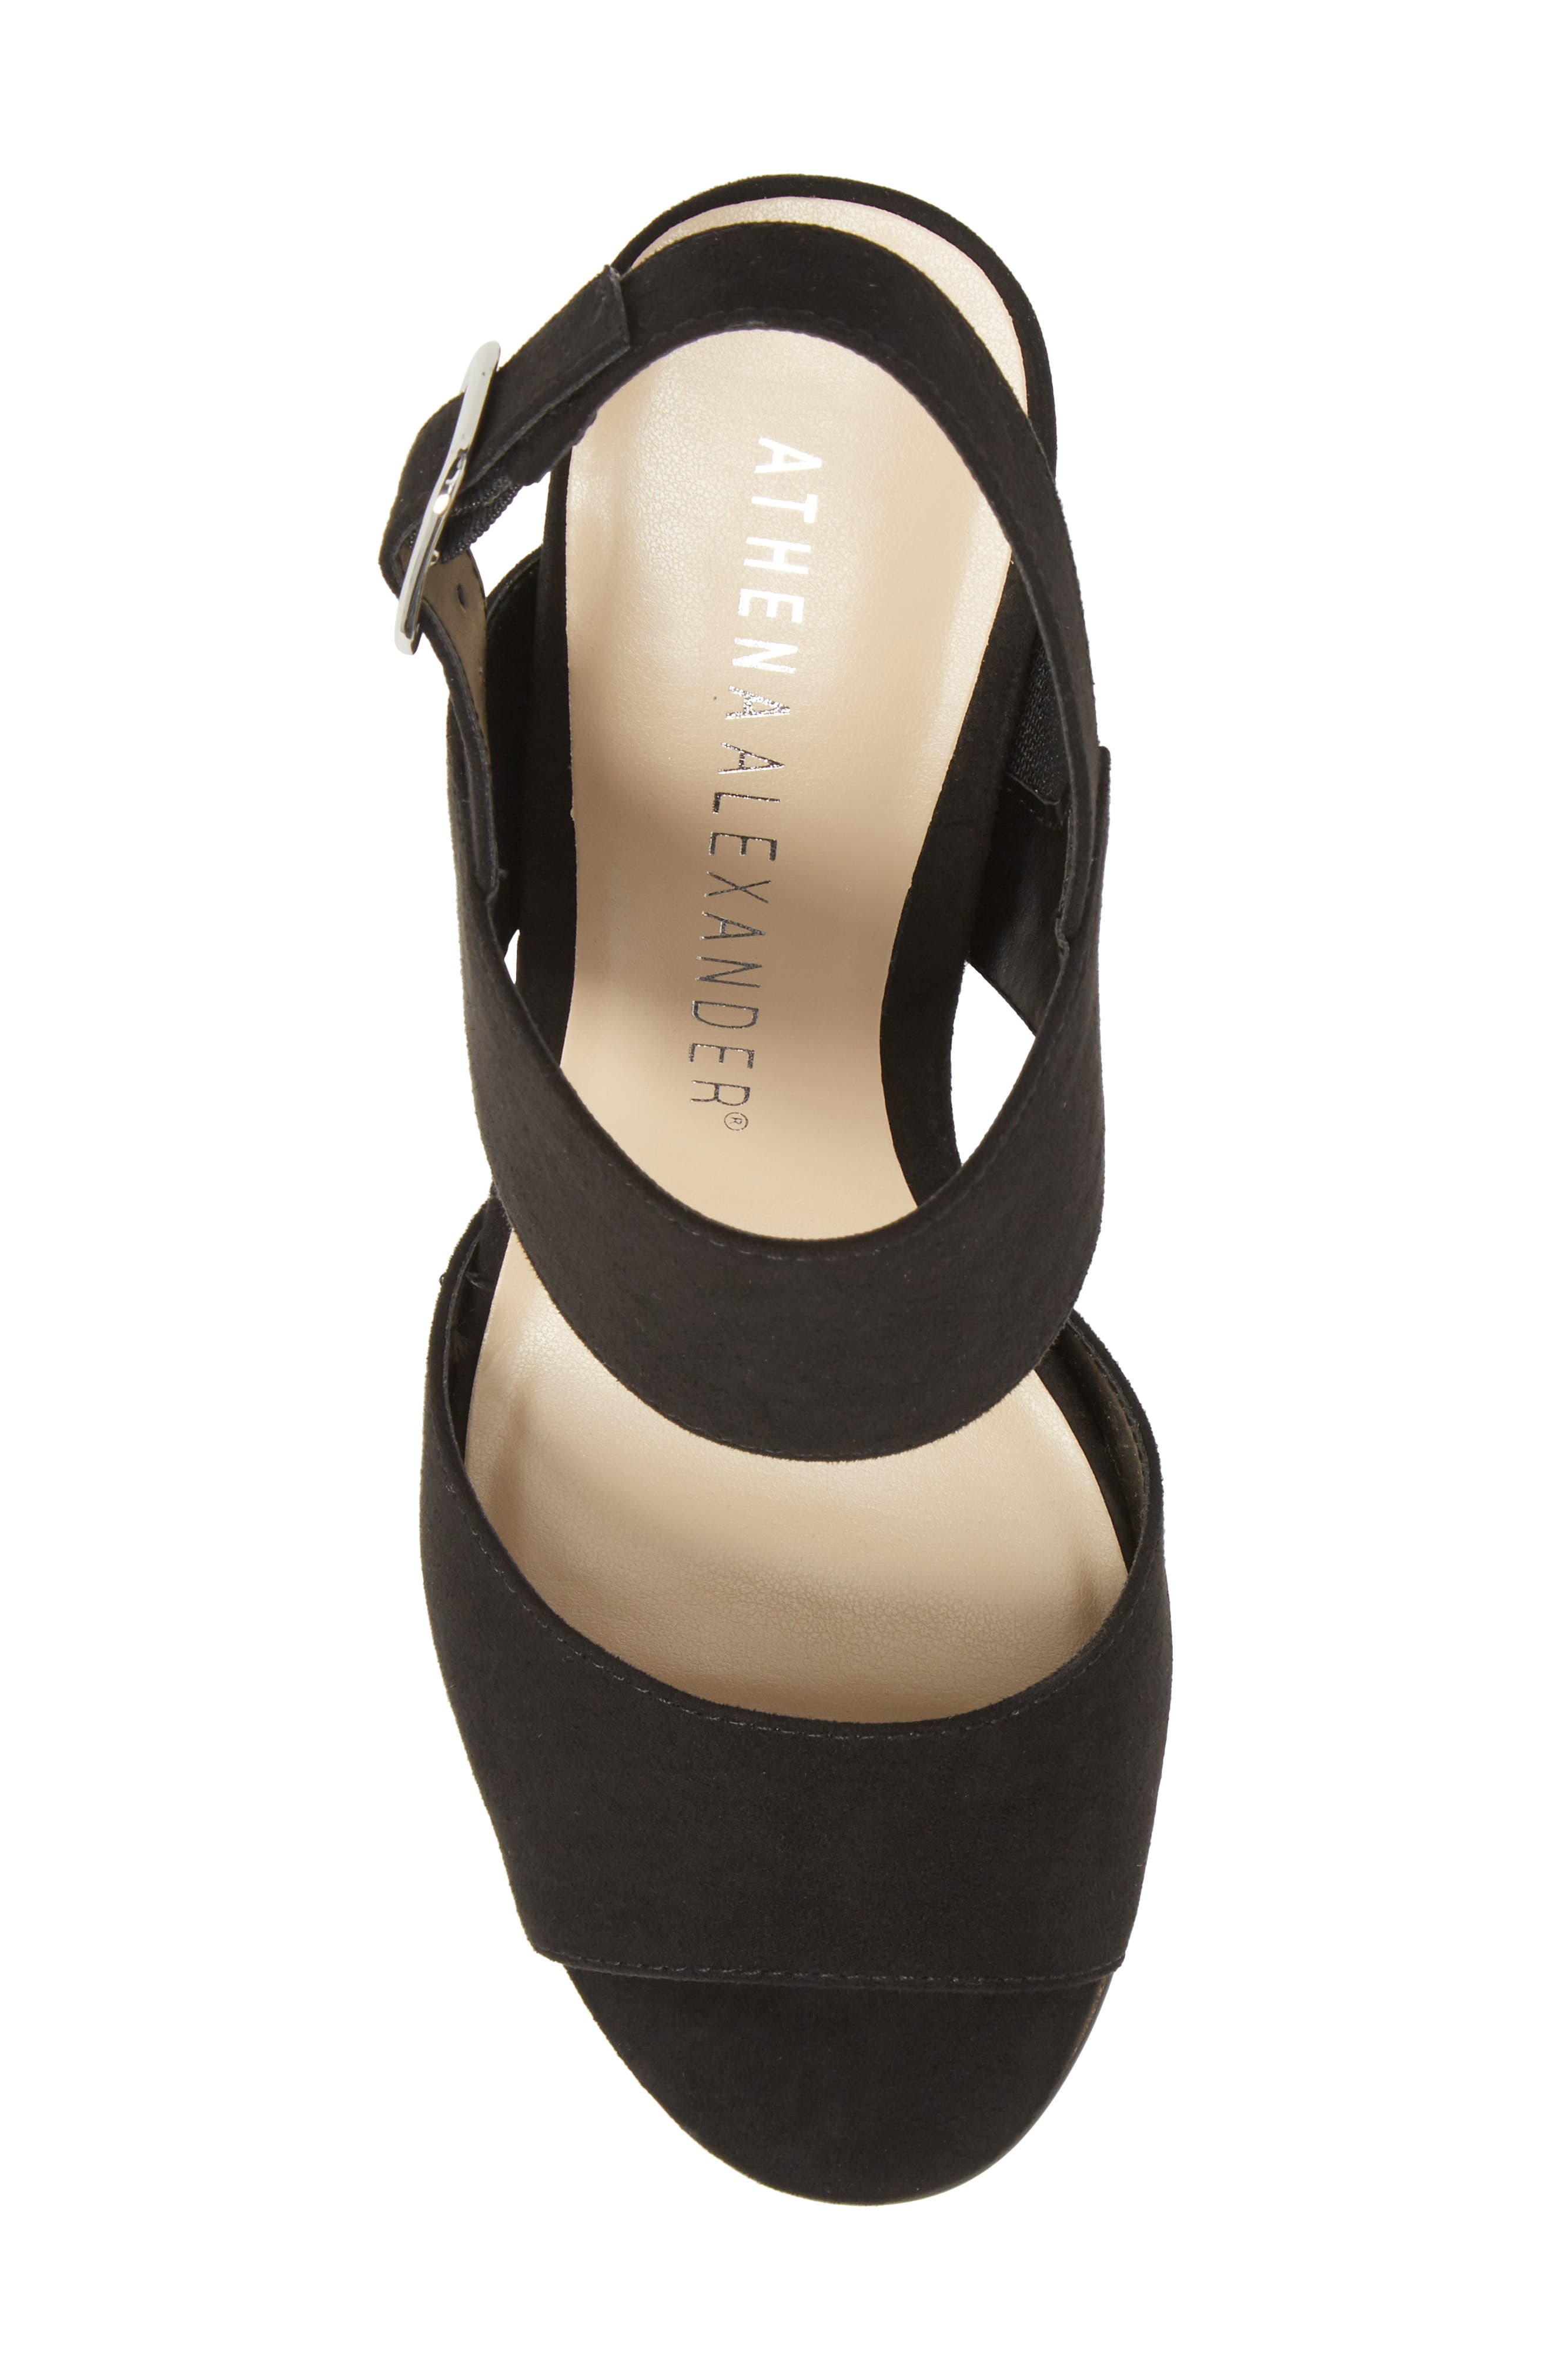 Slayte Wedge Sandal,                             Alternate thumbnail 5, color,                             BLACK FAUX SUEDE